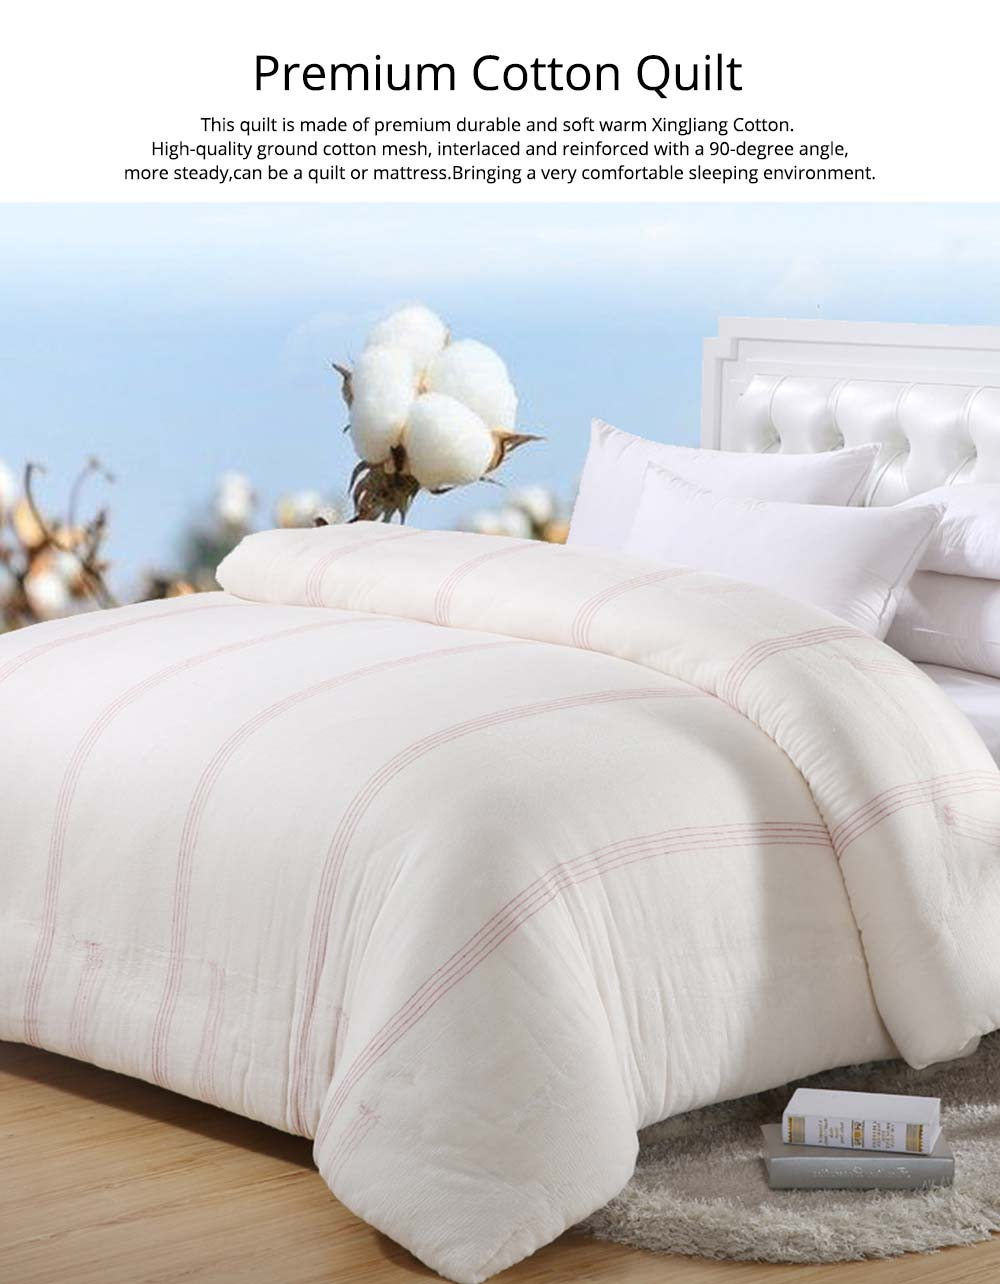 Red Line Reinforced Quilt Premium Cotton Autumn And Winter Quilt Hypoallergenic Soft Warm Covered Quilt Wholesale 0